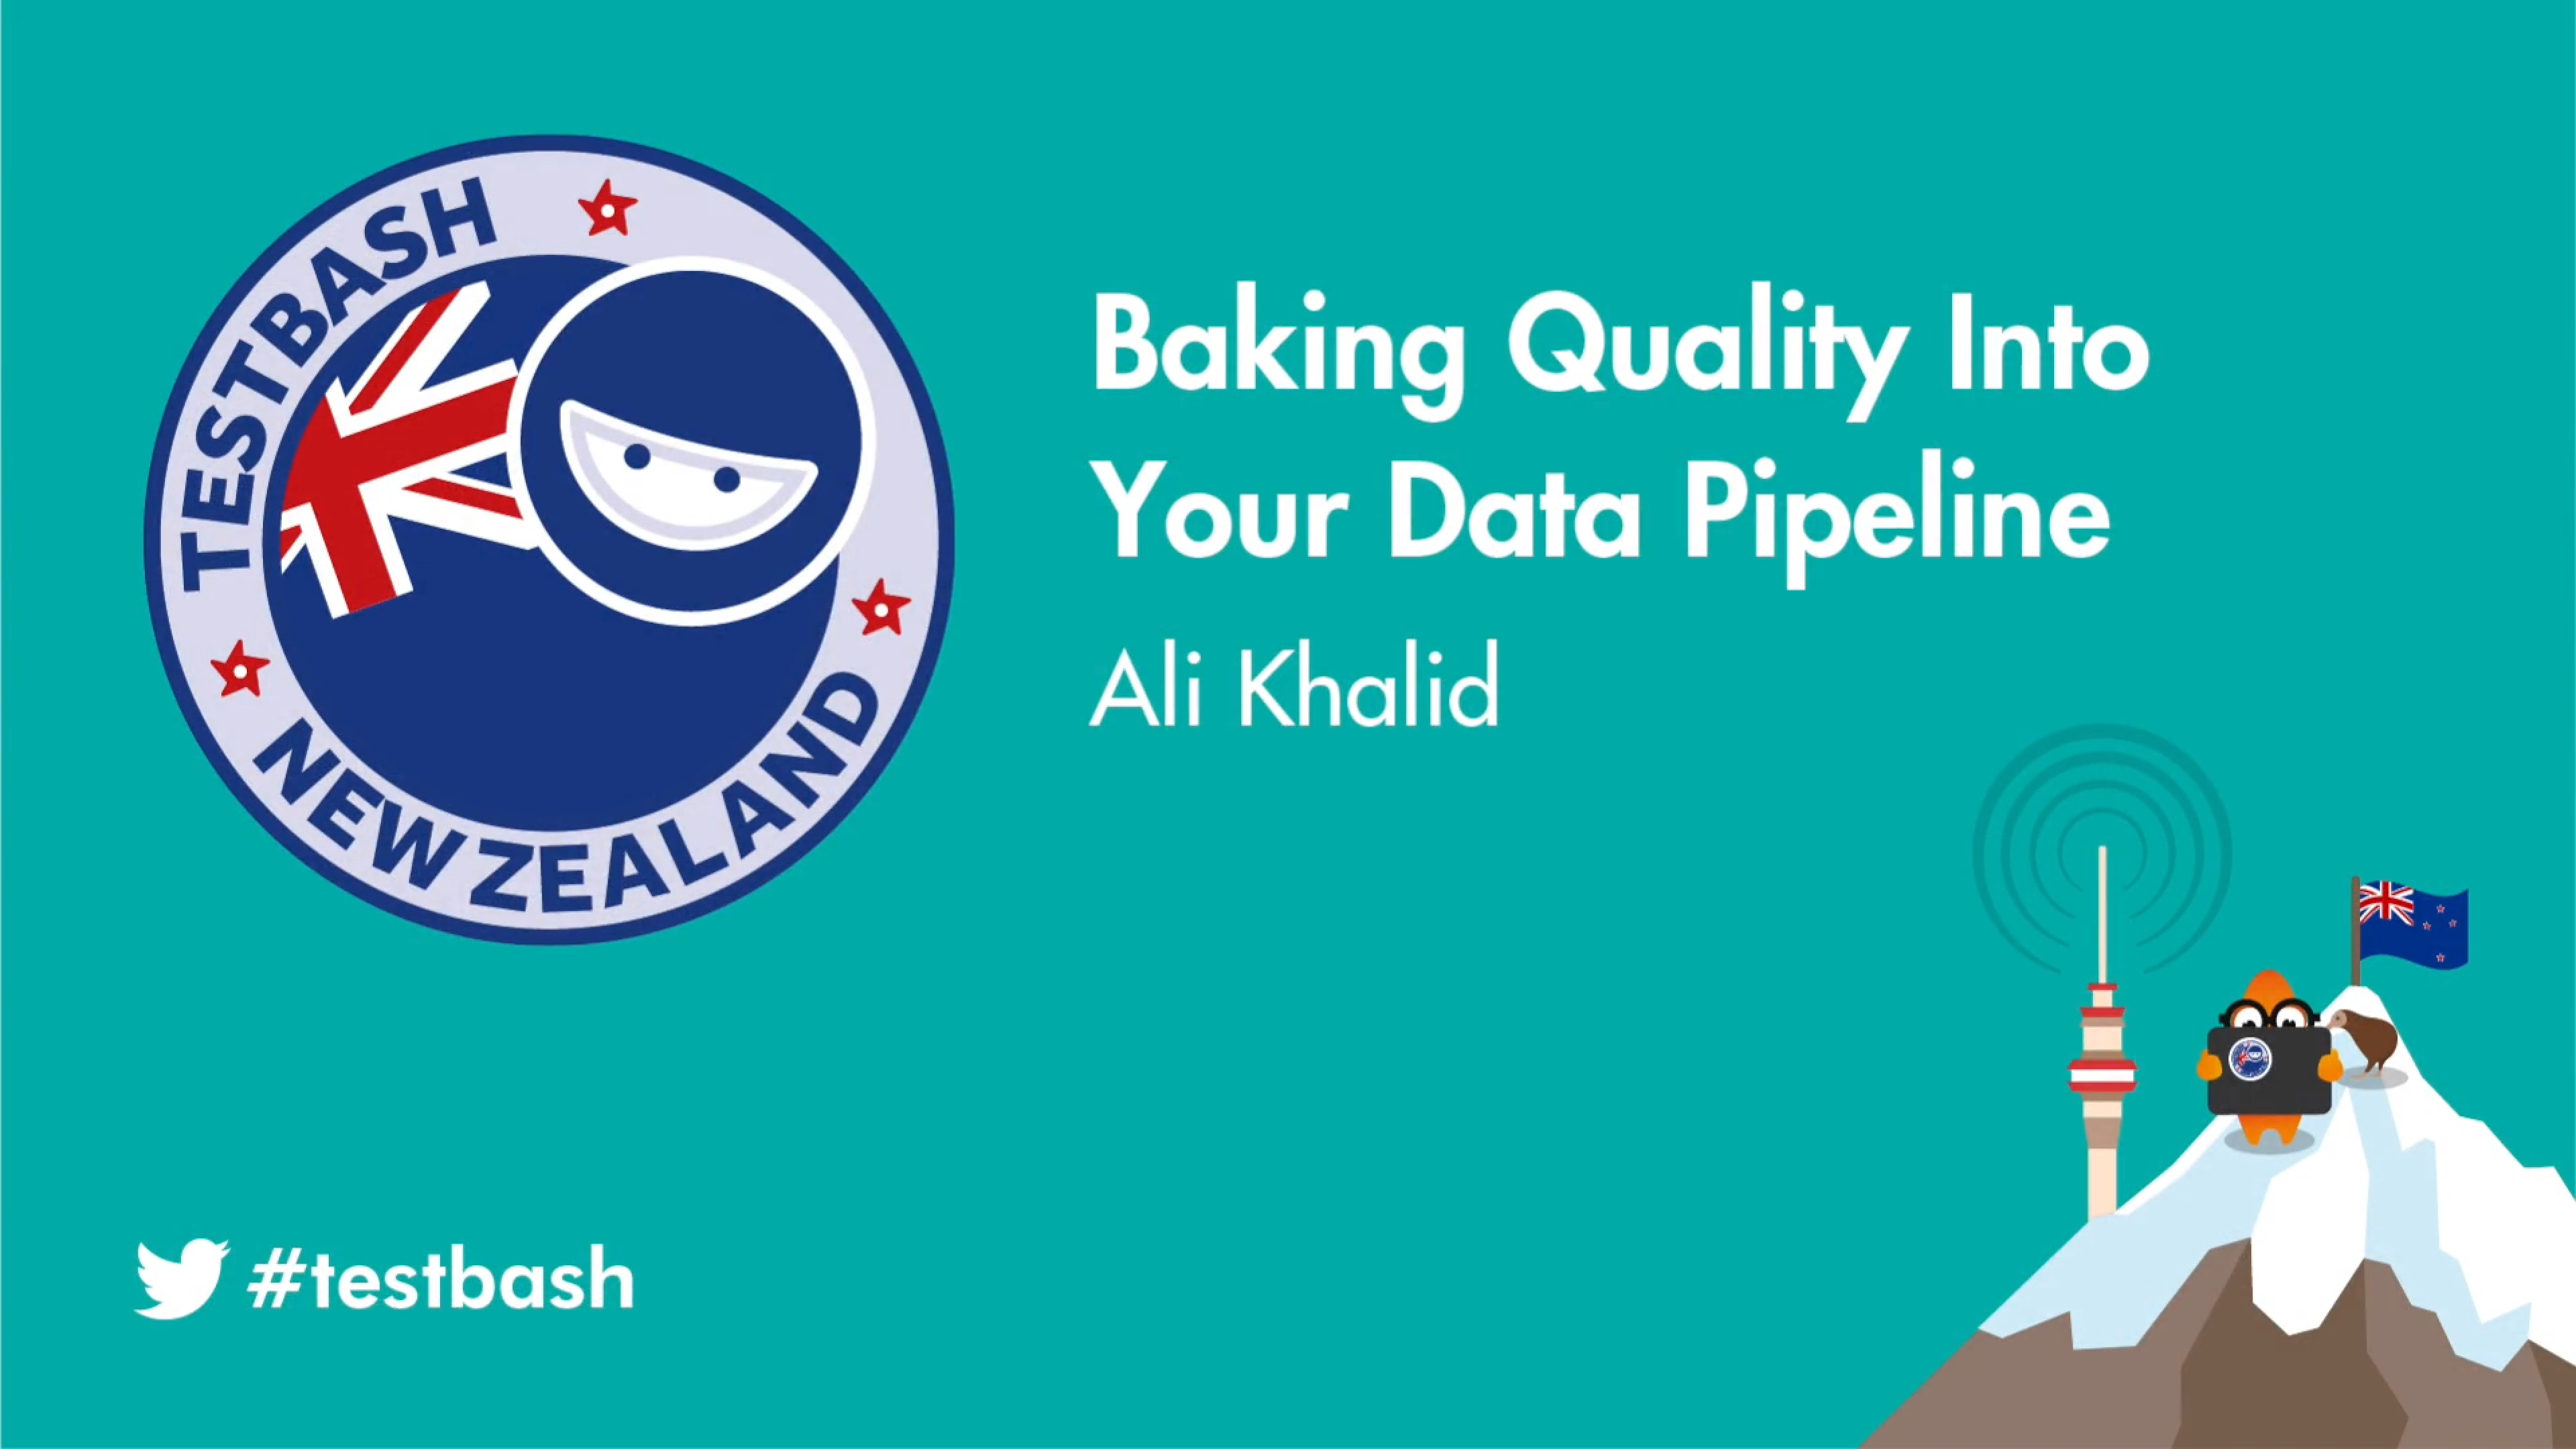 Baking Quality into Your Data Pipeline - Ali Khalid